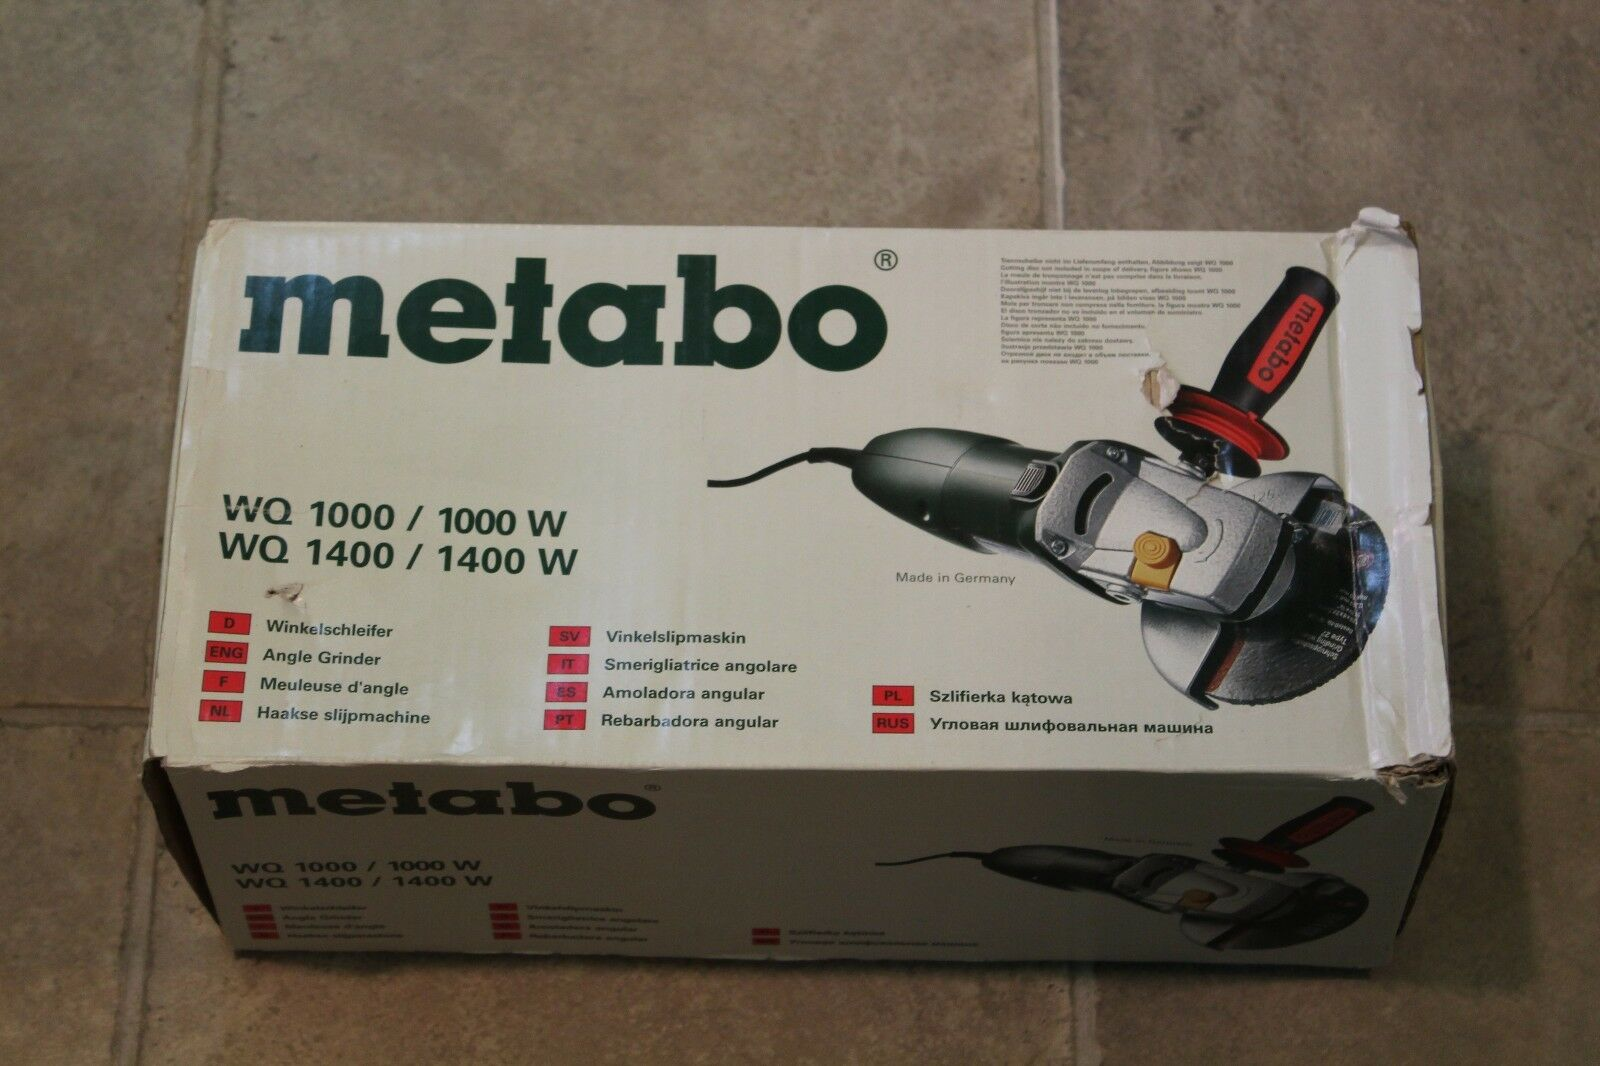 Metabo WQ 1000 5 Inch Angle Grinder